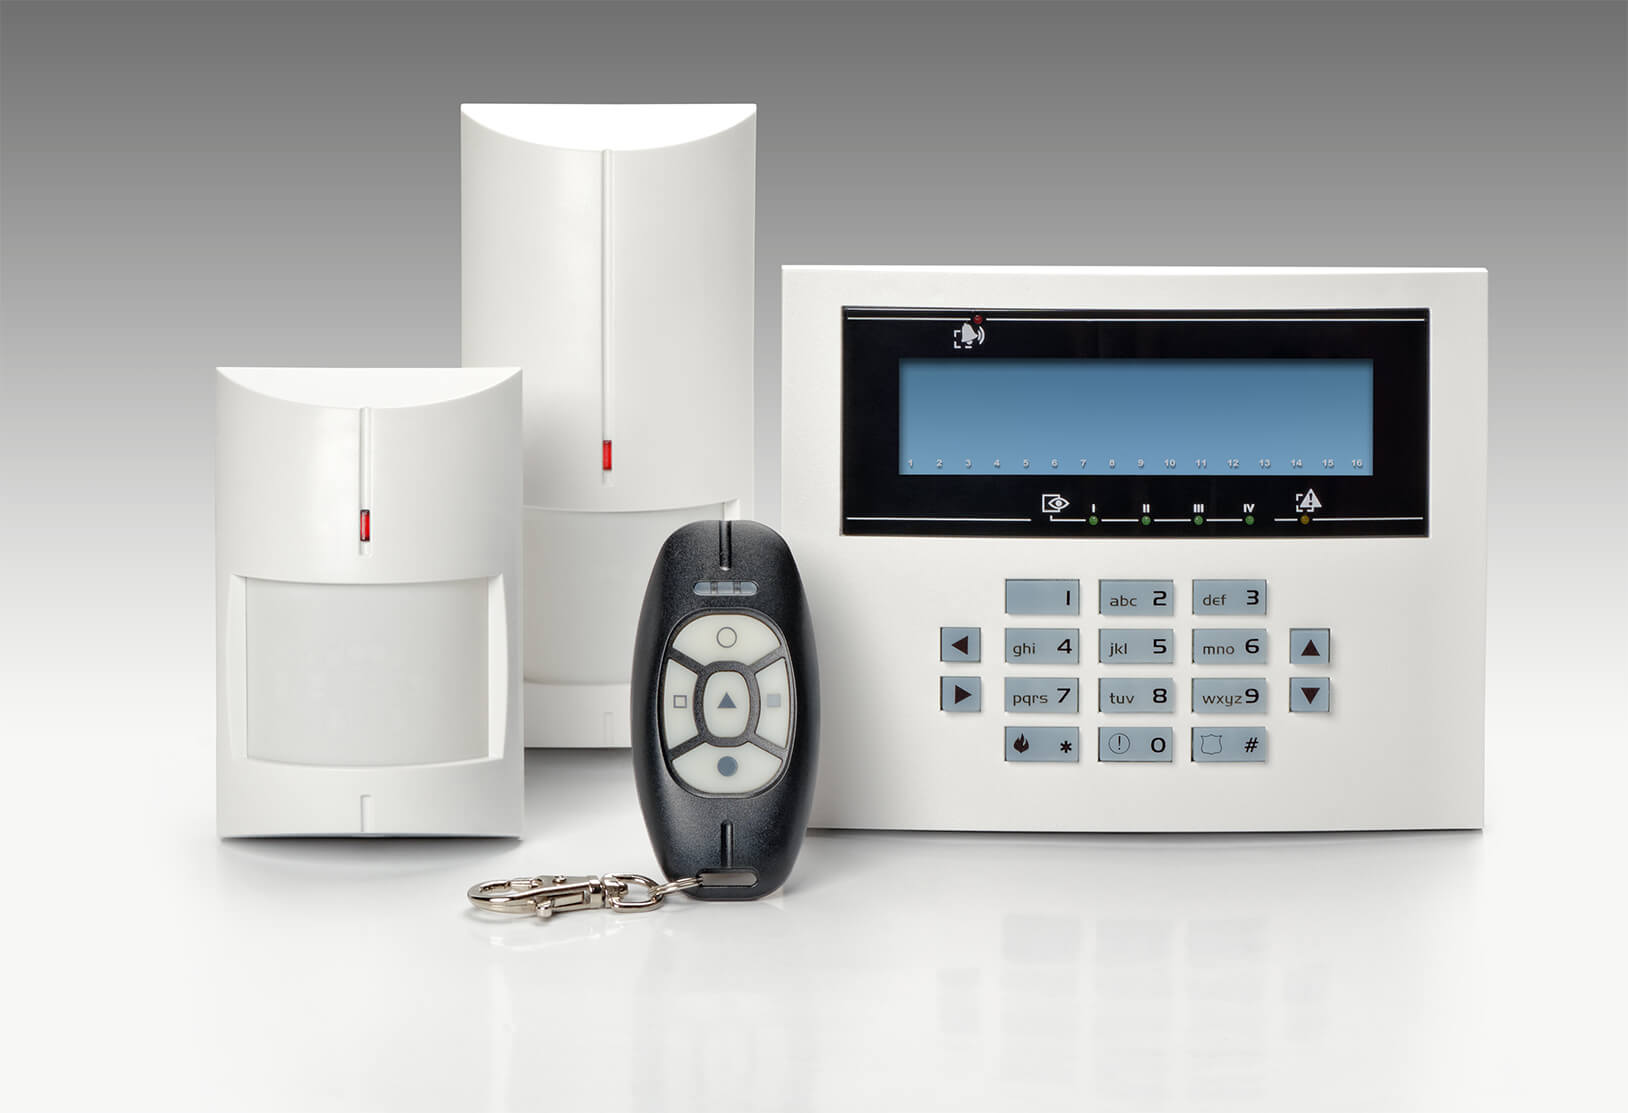 Burglar Alarms Repair in Hendon NW3 - Local Hendon NW3 alarm engineers.Call 02078872244 - See cost/price for burglar alarm repair and book your alarm engineer. No Hidden charges,No Contracts, Book as you need.Engineers on demand.All alarm makes repaired.Same day service ability.